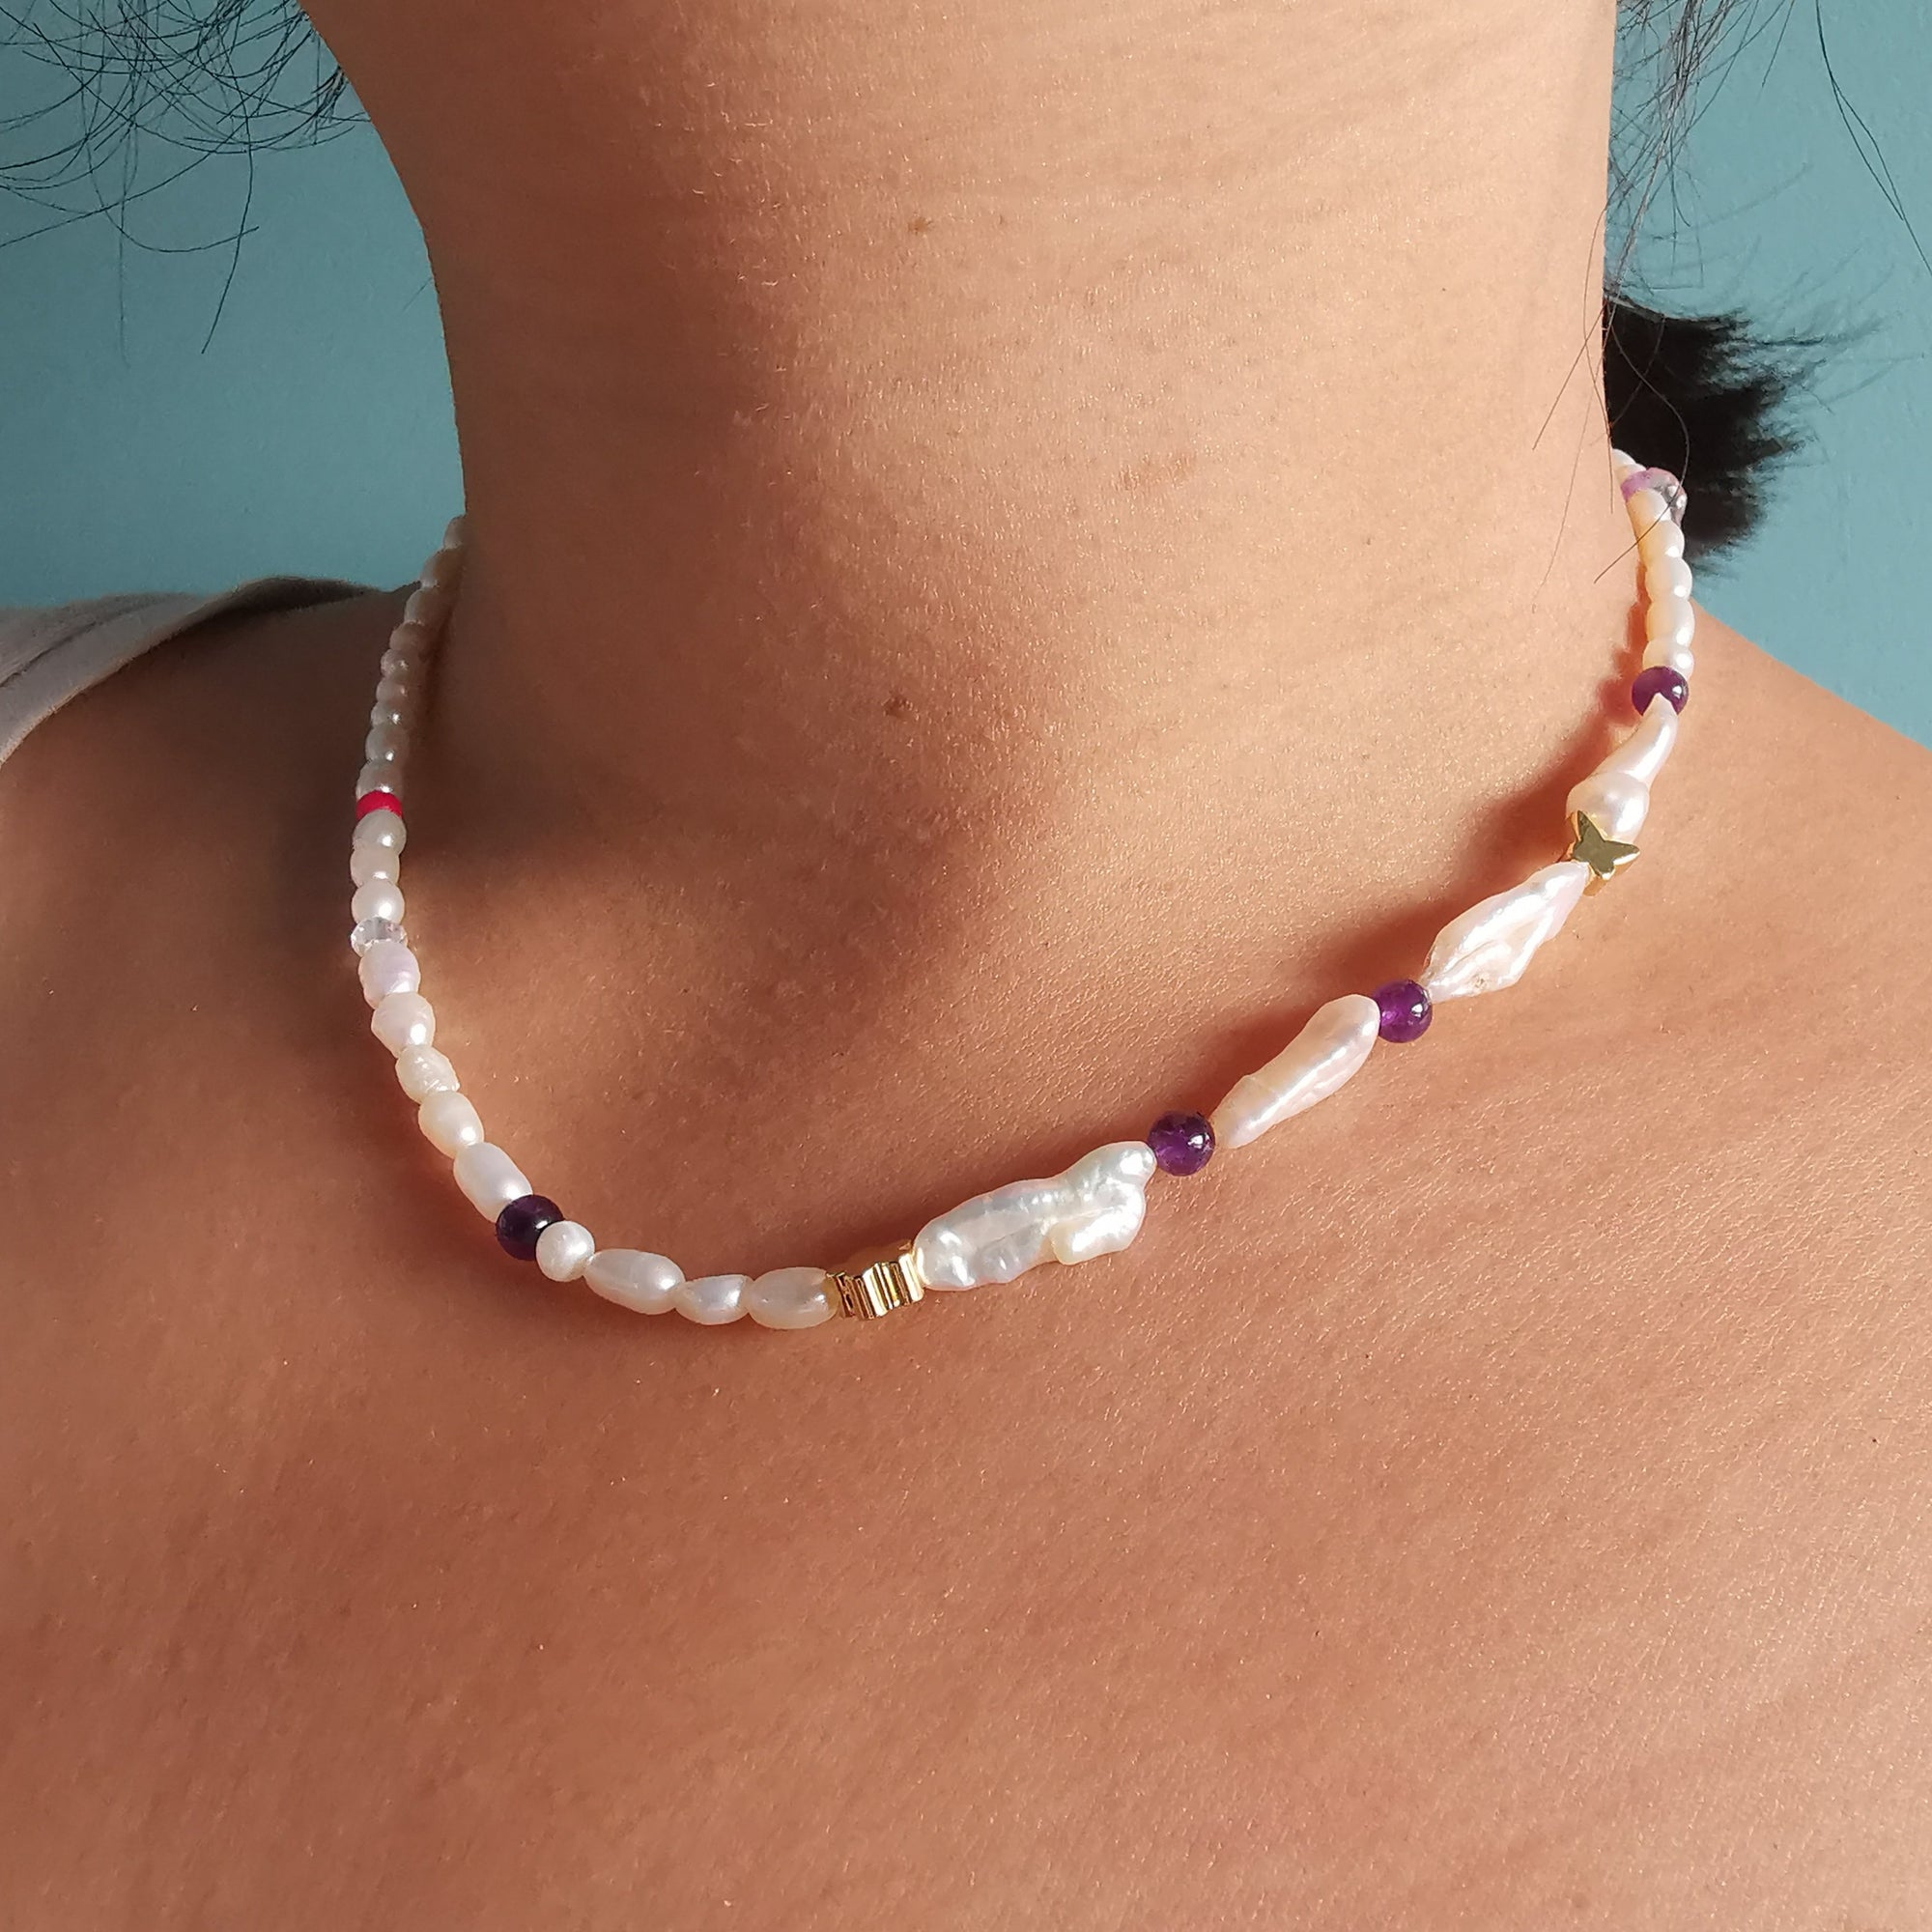 Freshwater Pearl Necklace With Biwa Pearls & Amethyst Stones